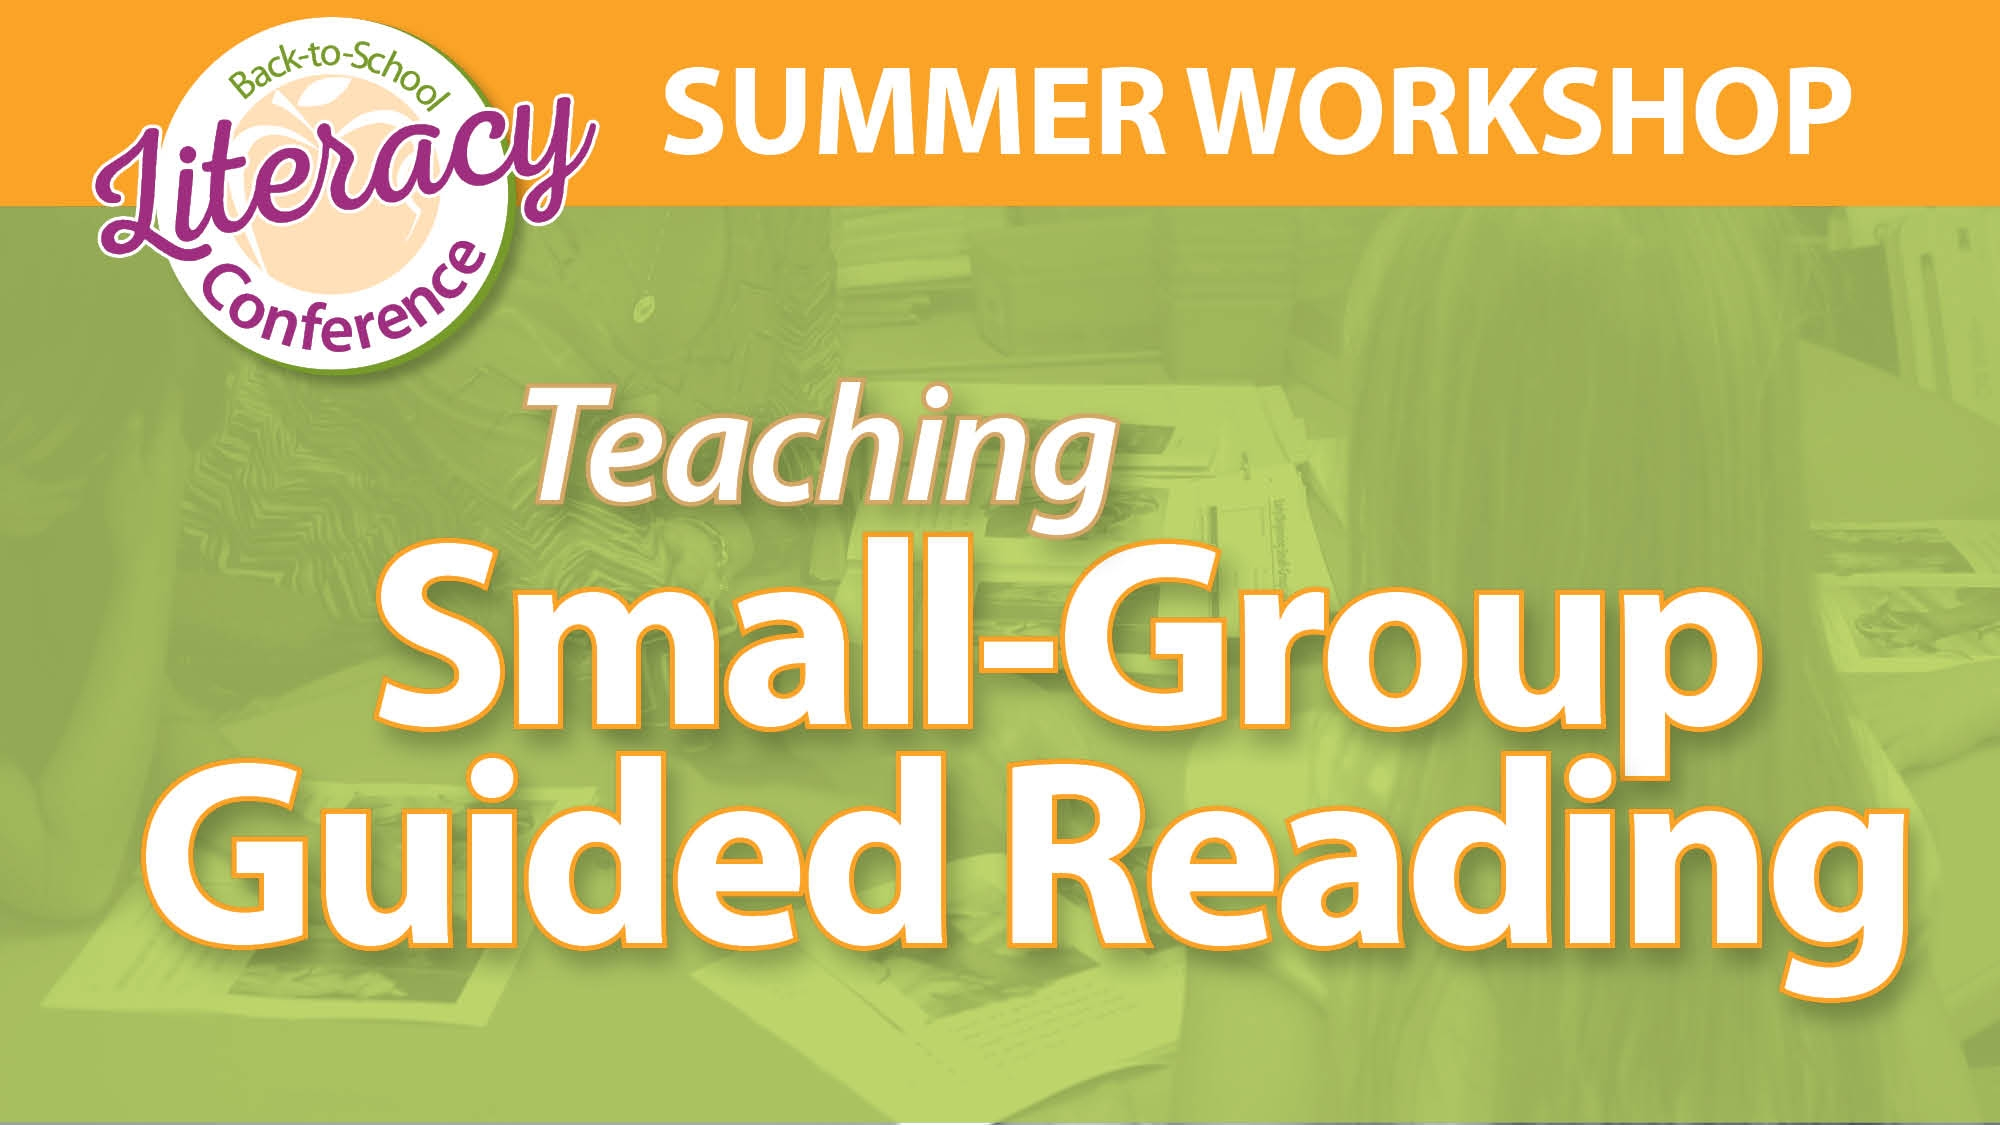 Back-to-School Literacy Conference: Teaching Small-Group Guided Reading